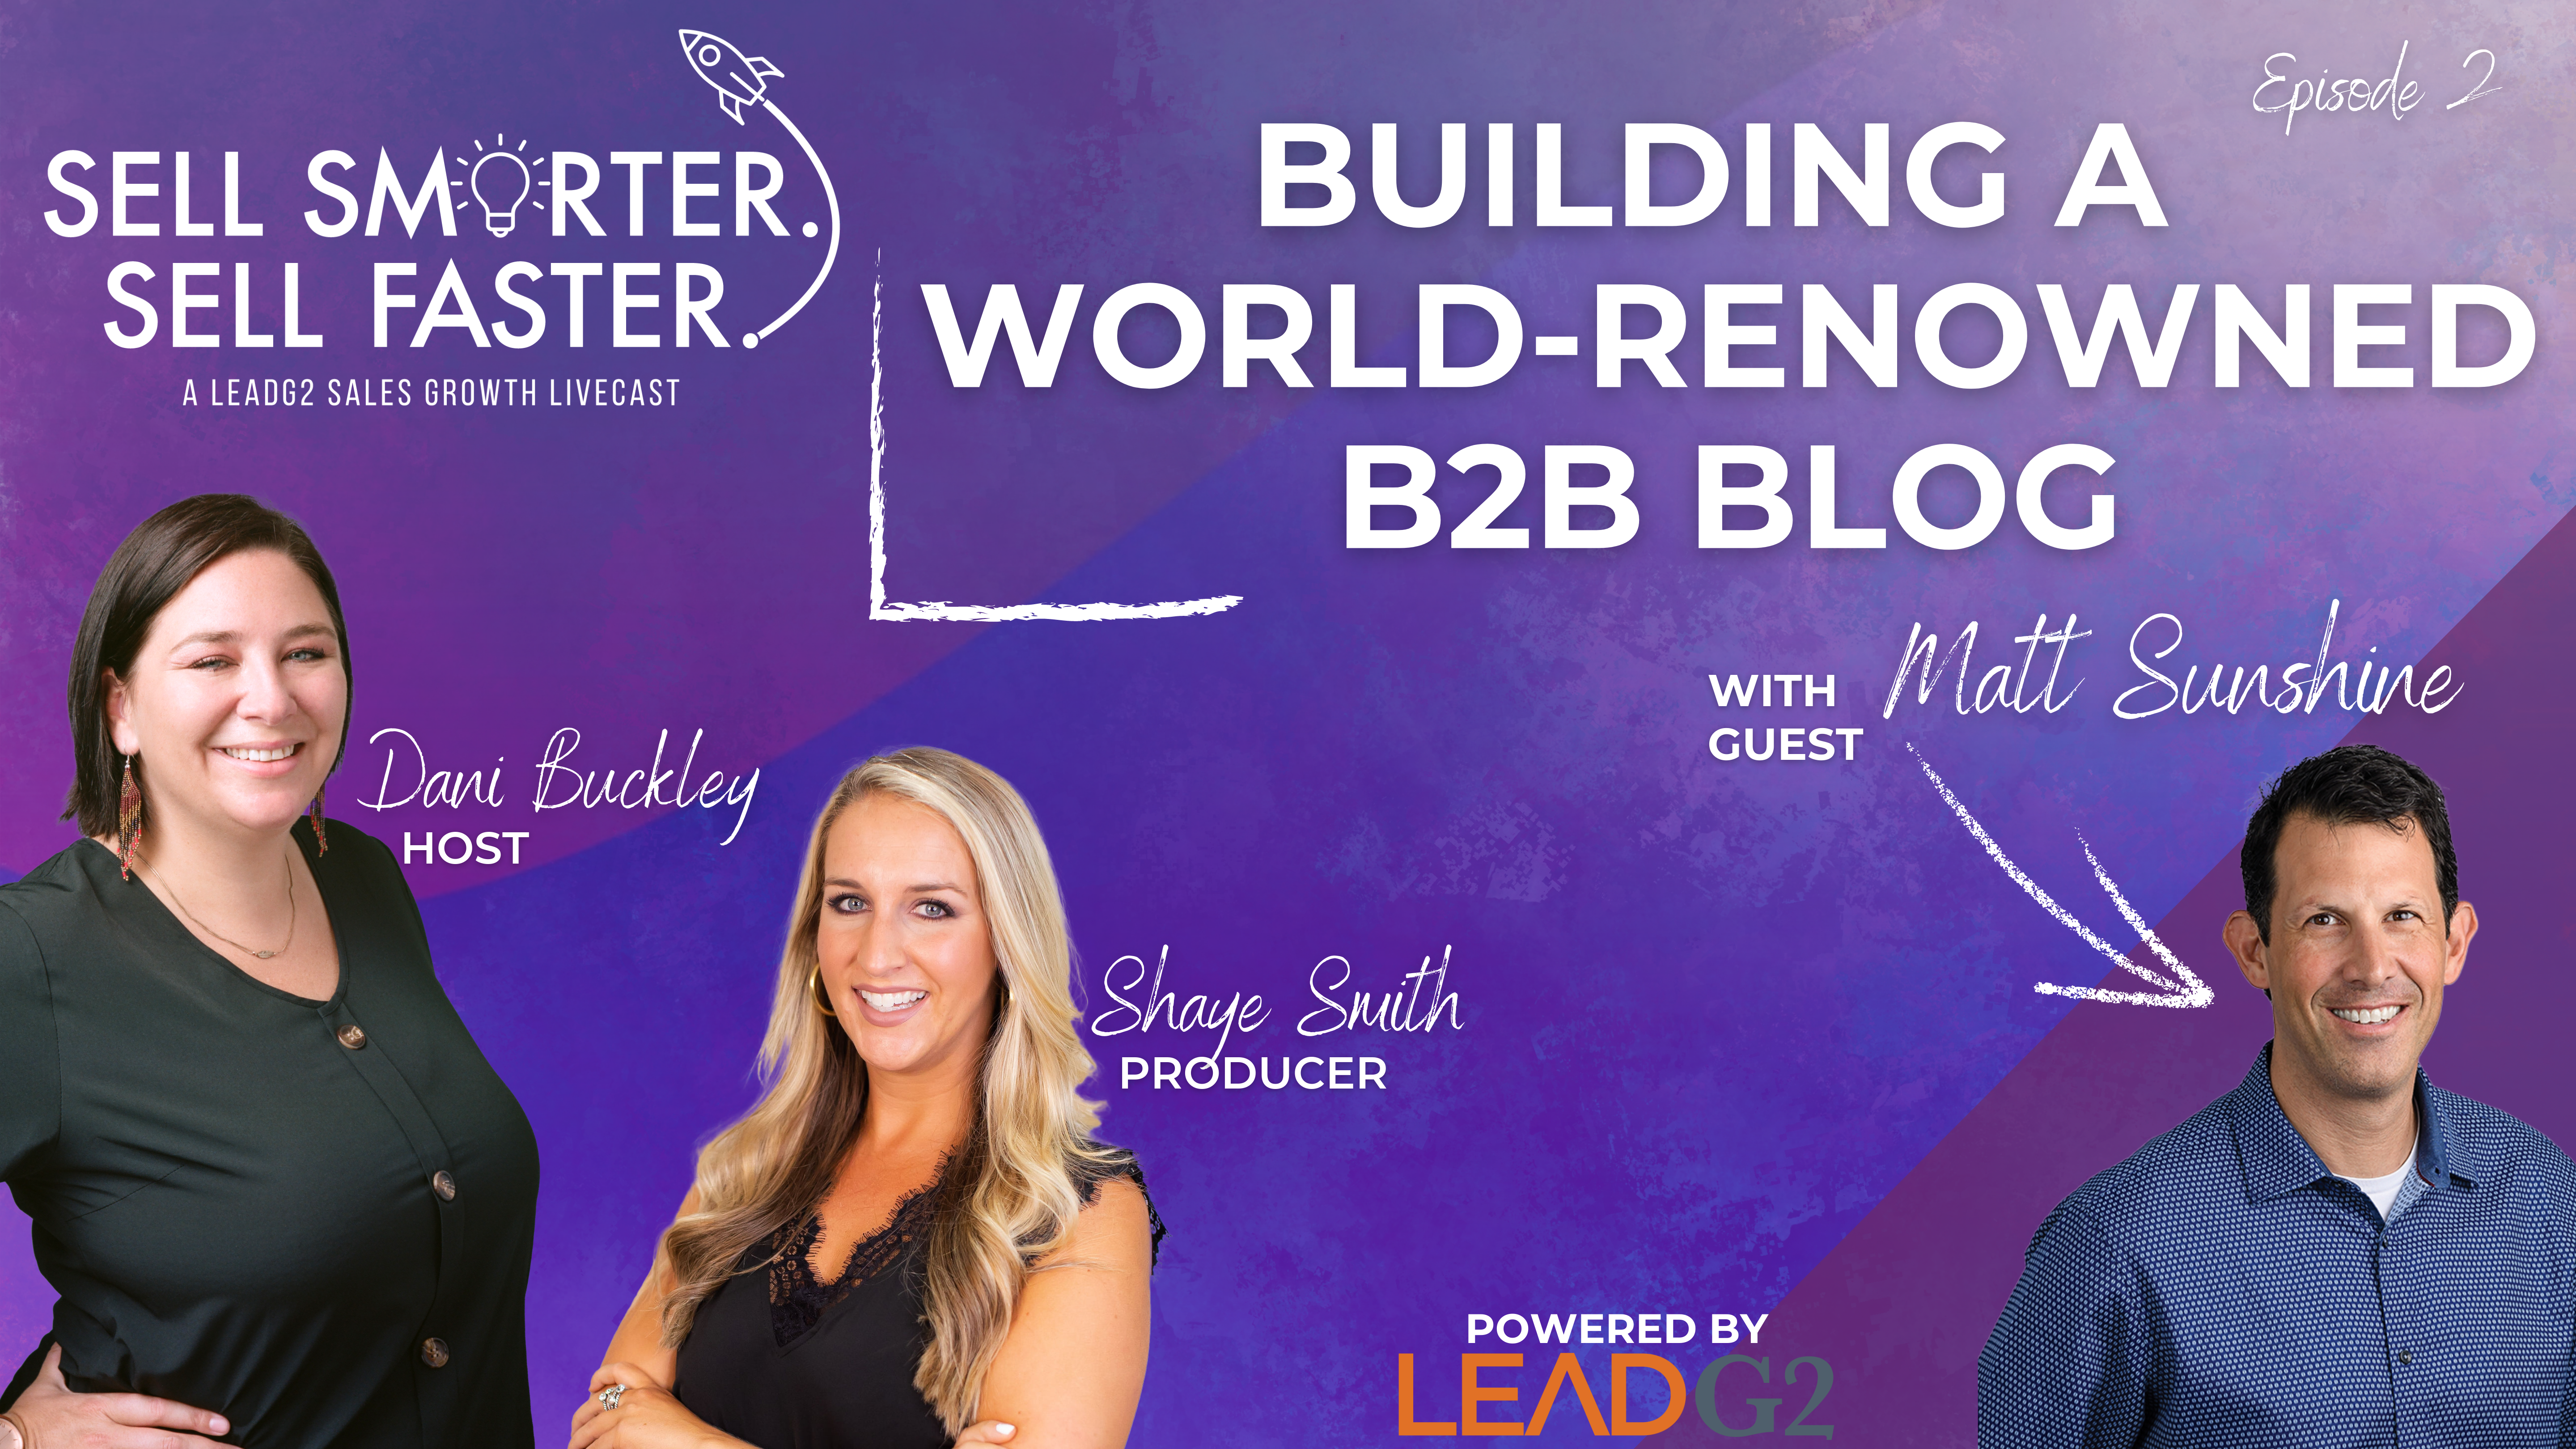 SSSF_Ep2_building a world renowned b2b blog